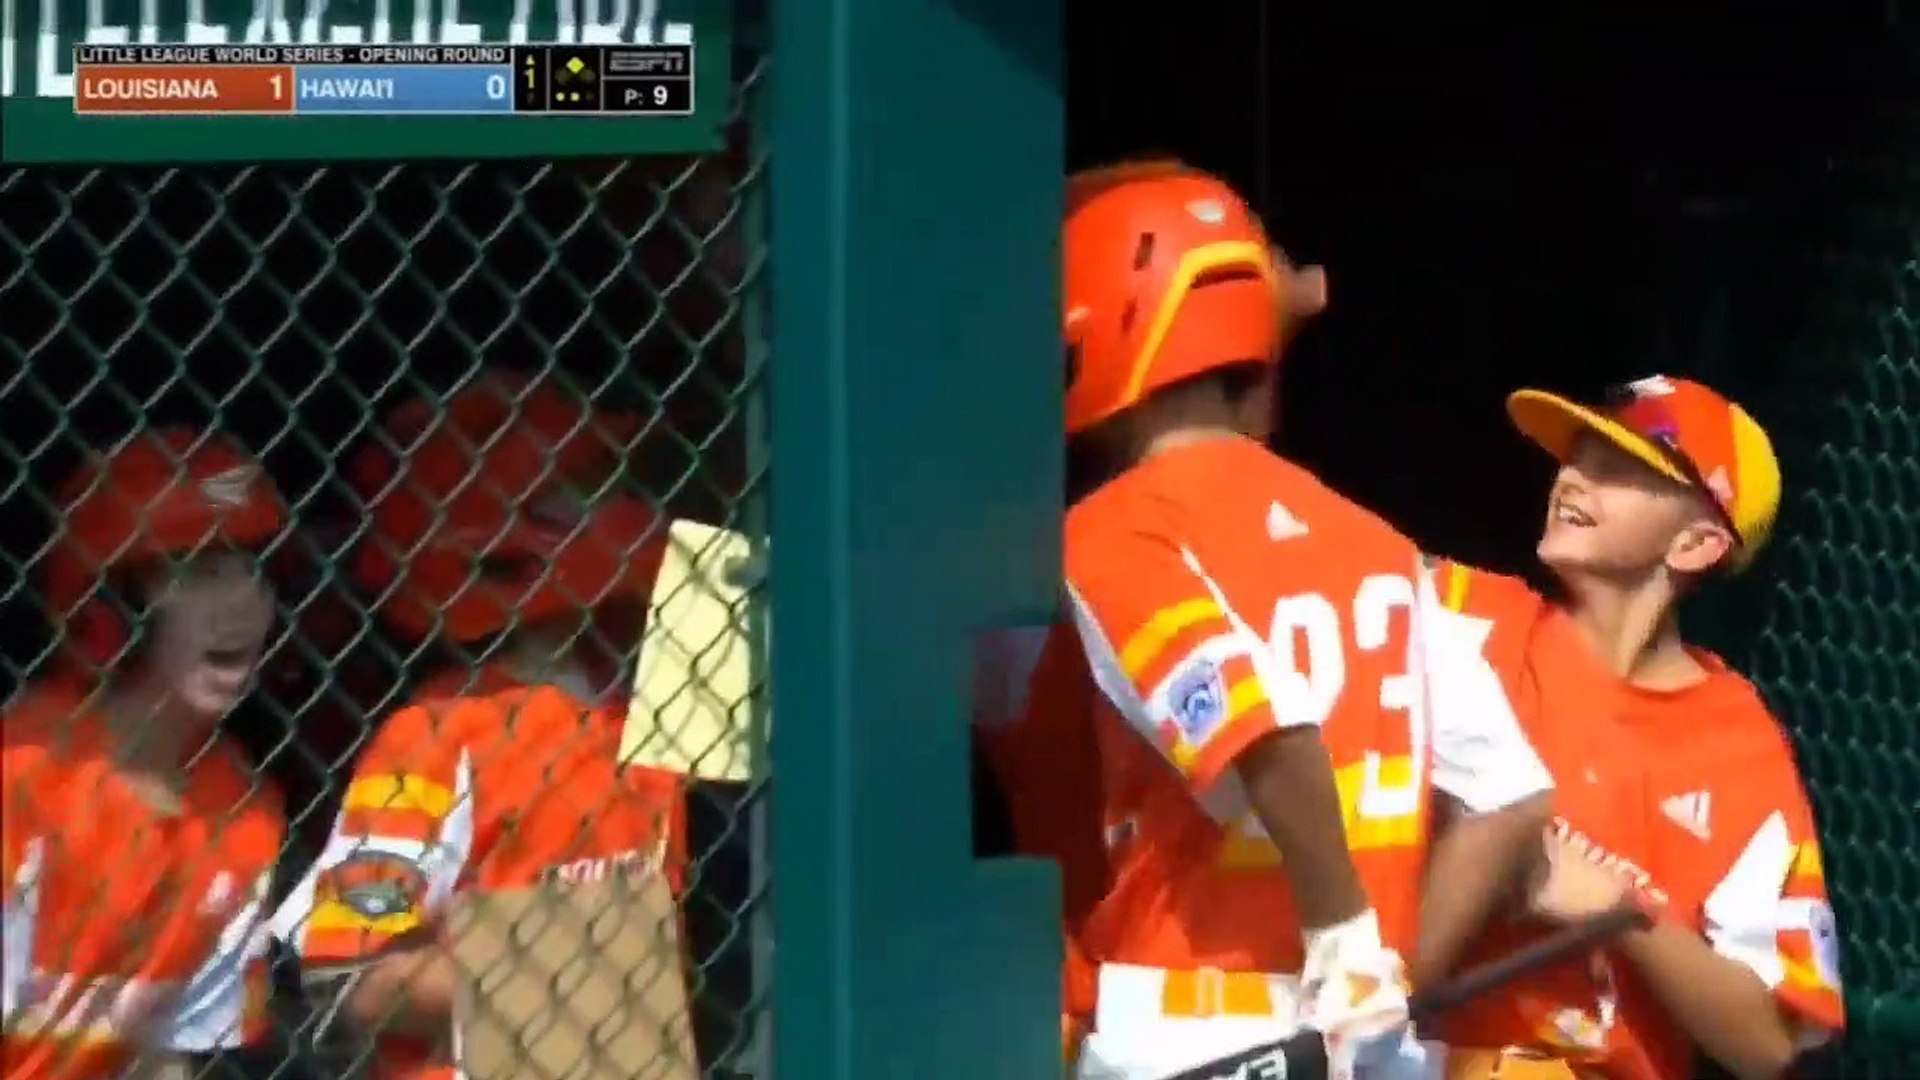 LLWS 2019 Opening Round - Louisiana vs Hawaii - 2019 Little League World Series Highlights